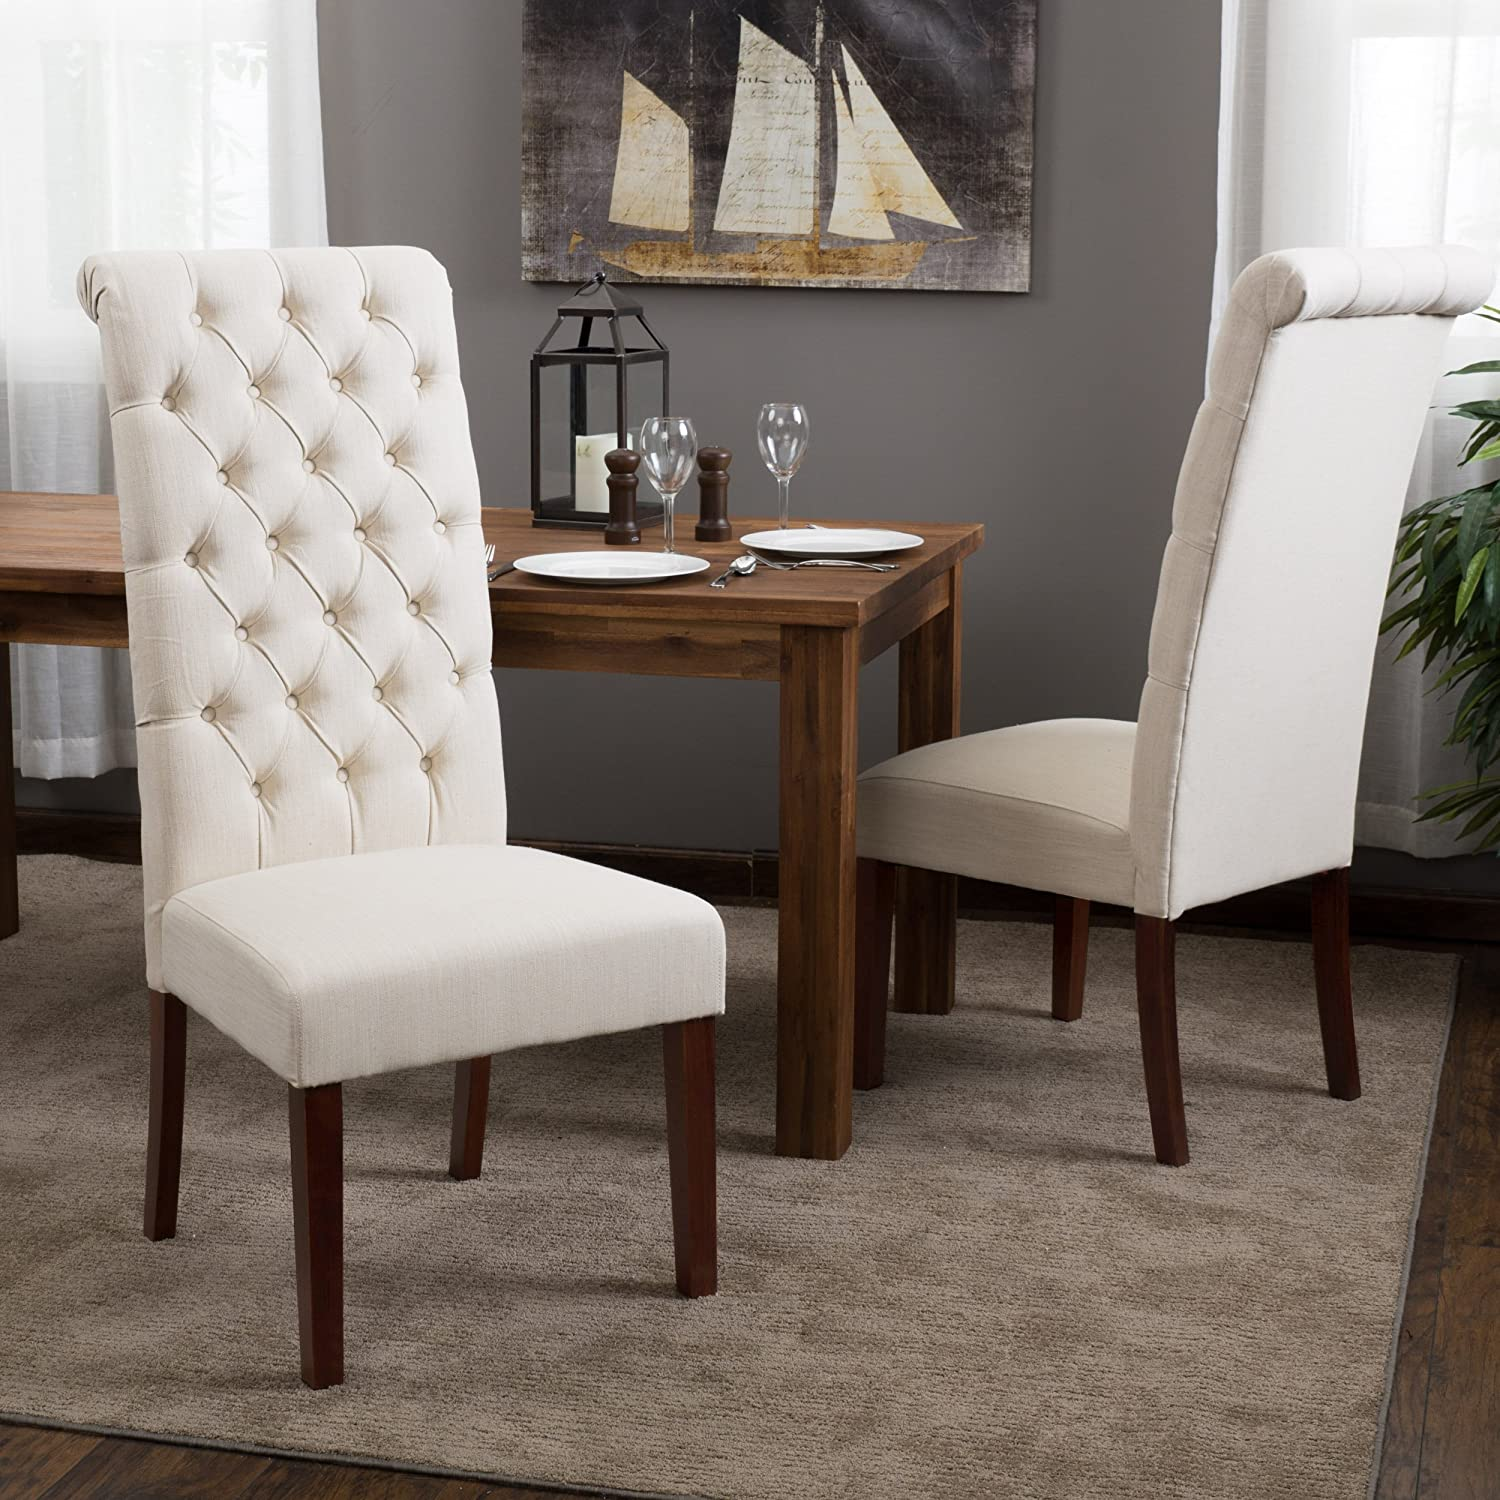 dining room sets with fabric chairs. Amazon com  Best Selling Natural Tall Tufted Dining Chair 2 Pack Chairs